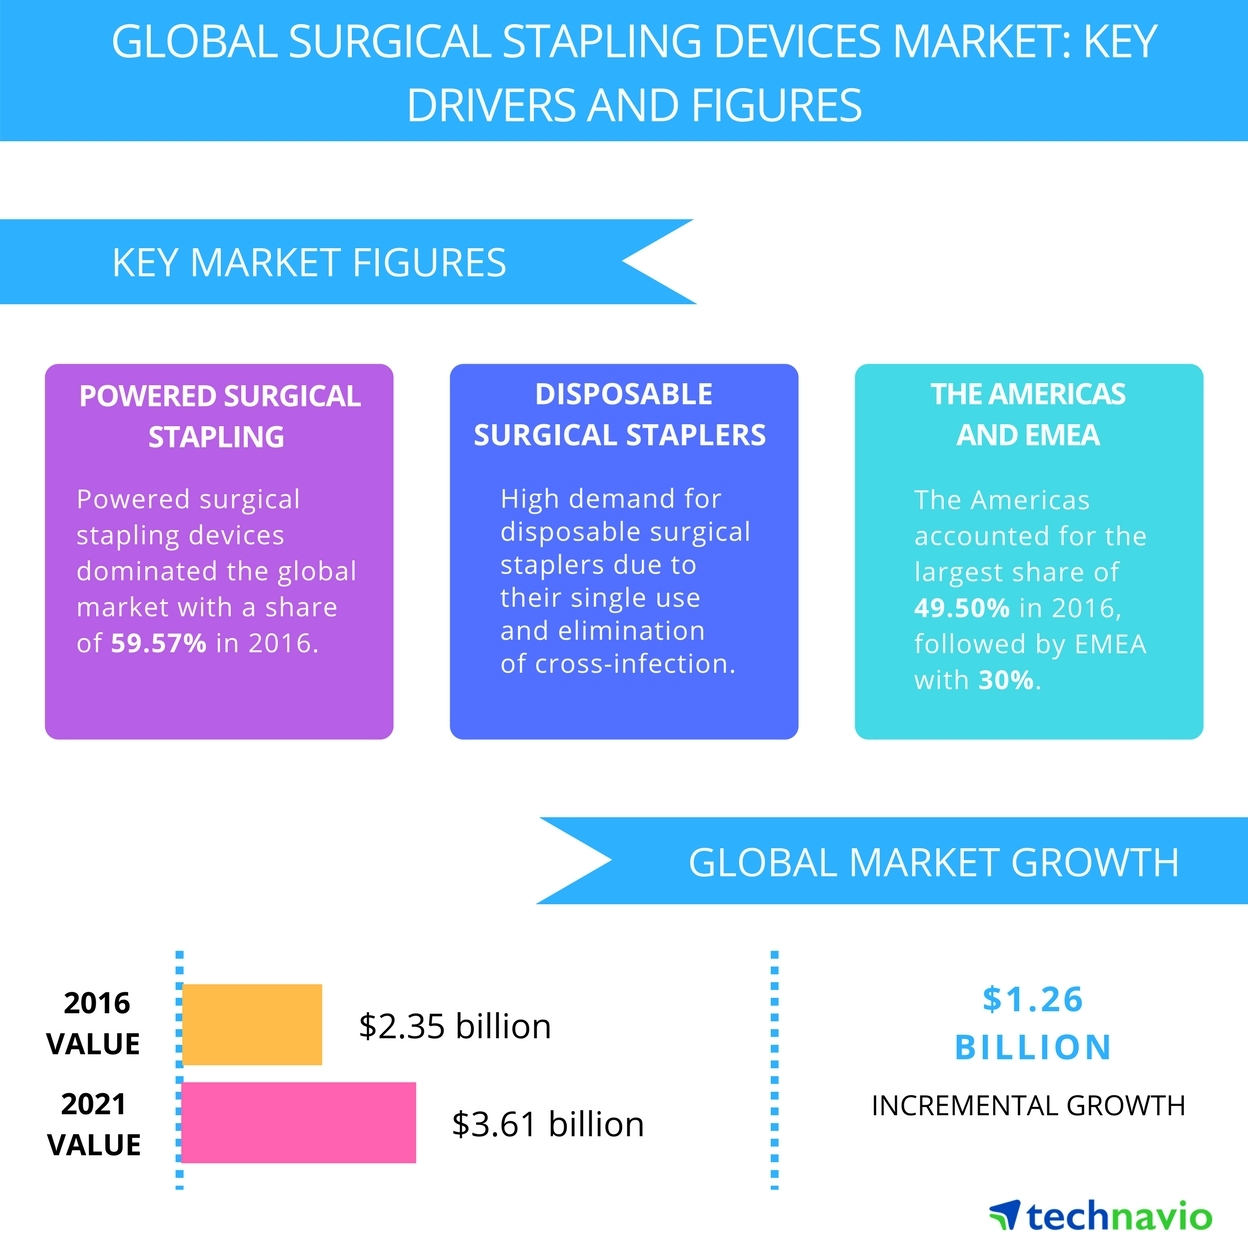 Technavio has published a new report on the global surgical stapling devices market from 2017-2021. (Photo: Business Wire)